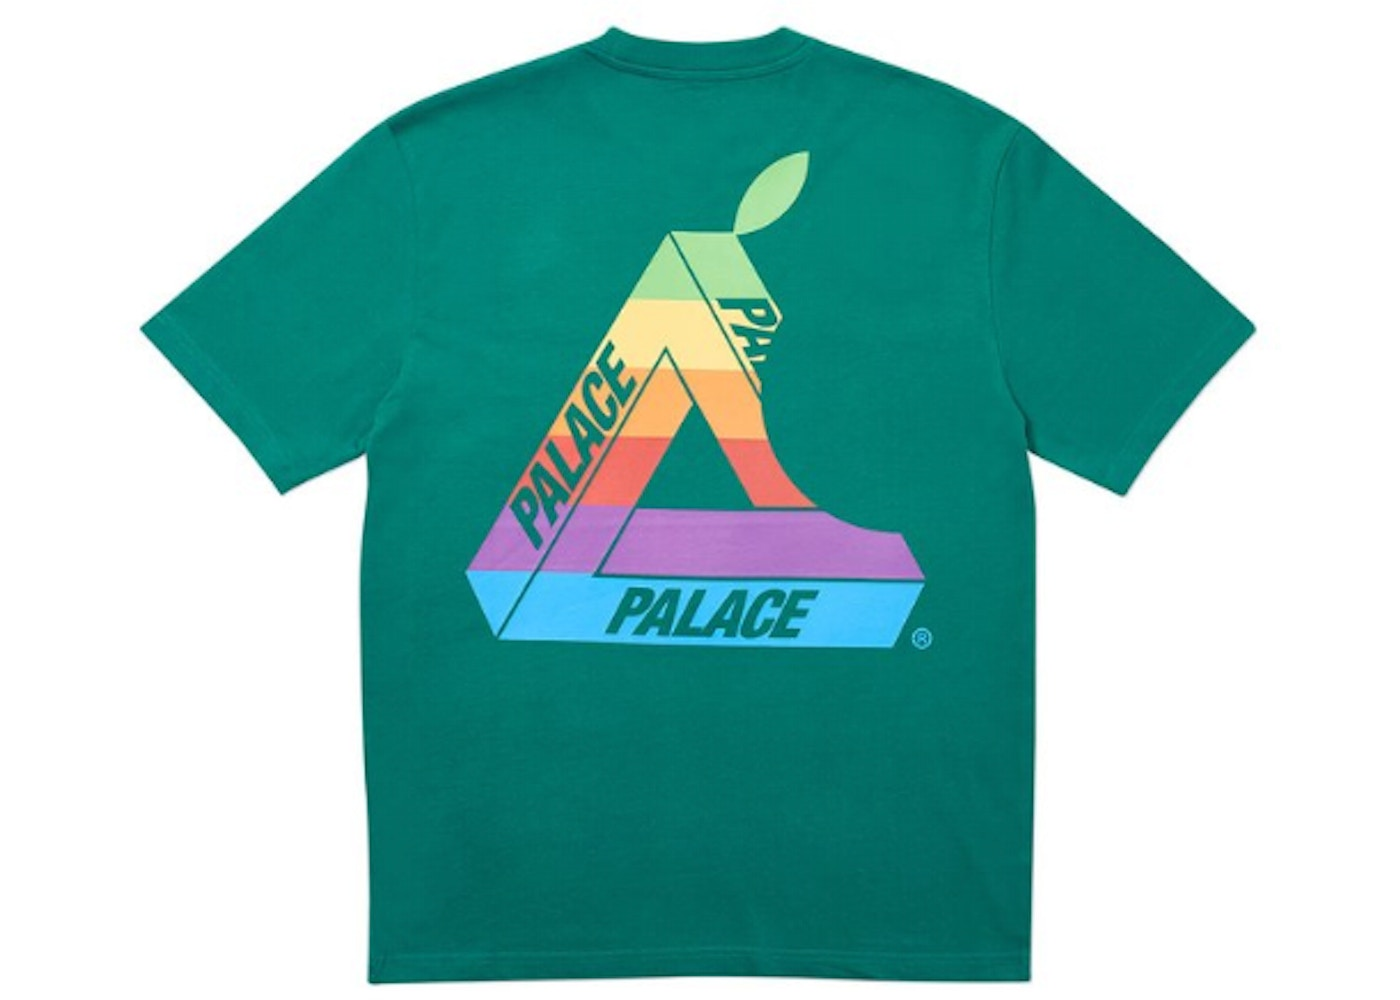 3accac50 Palace Jobsworth T-Shirt Green - SS19